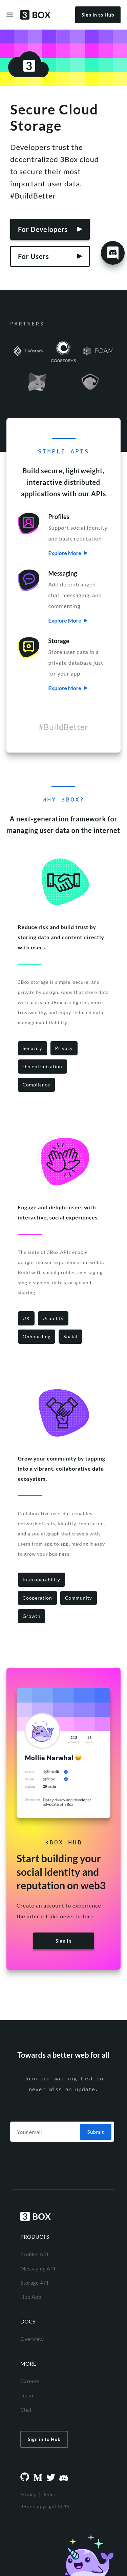 Example of Design for Internet & Telecom, Web Services, Mobile Landing Page by 3box.io | Mobile Landing Page Design